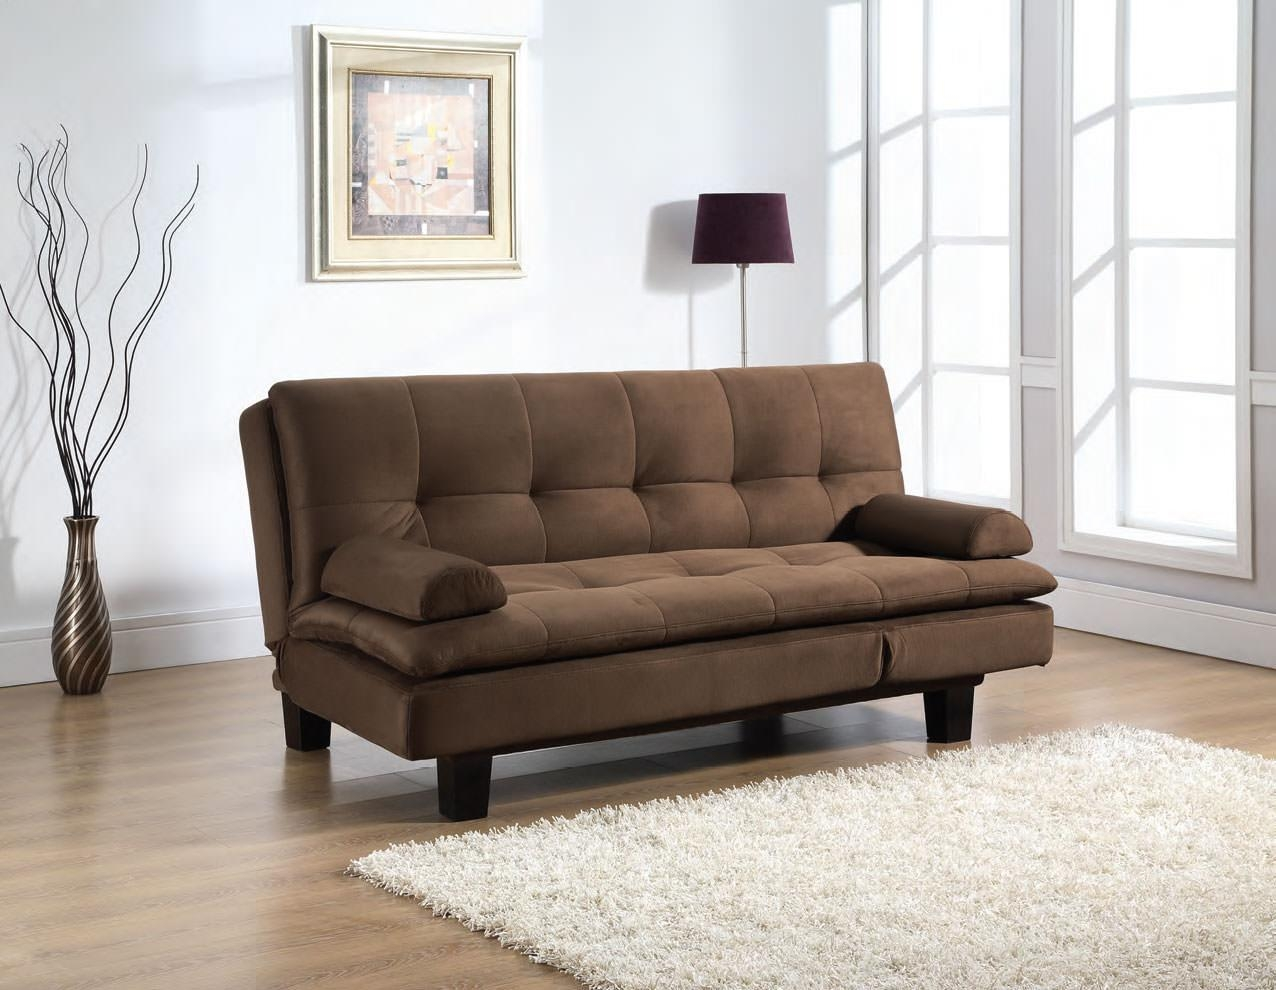 Chair Converts To Bed 20 Collection Of Convertible Sofa Chair Bed Sofa Ideas